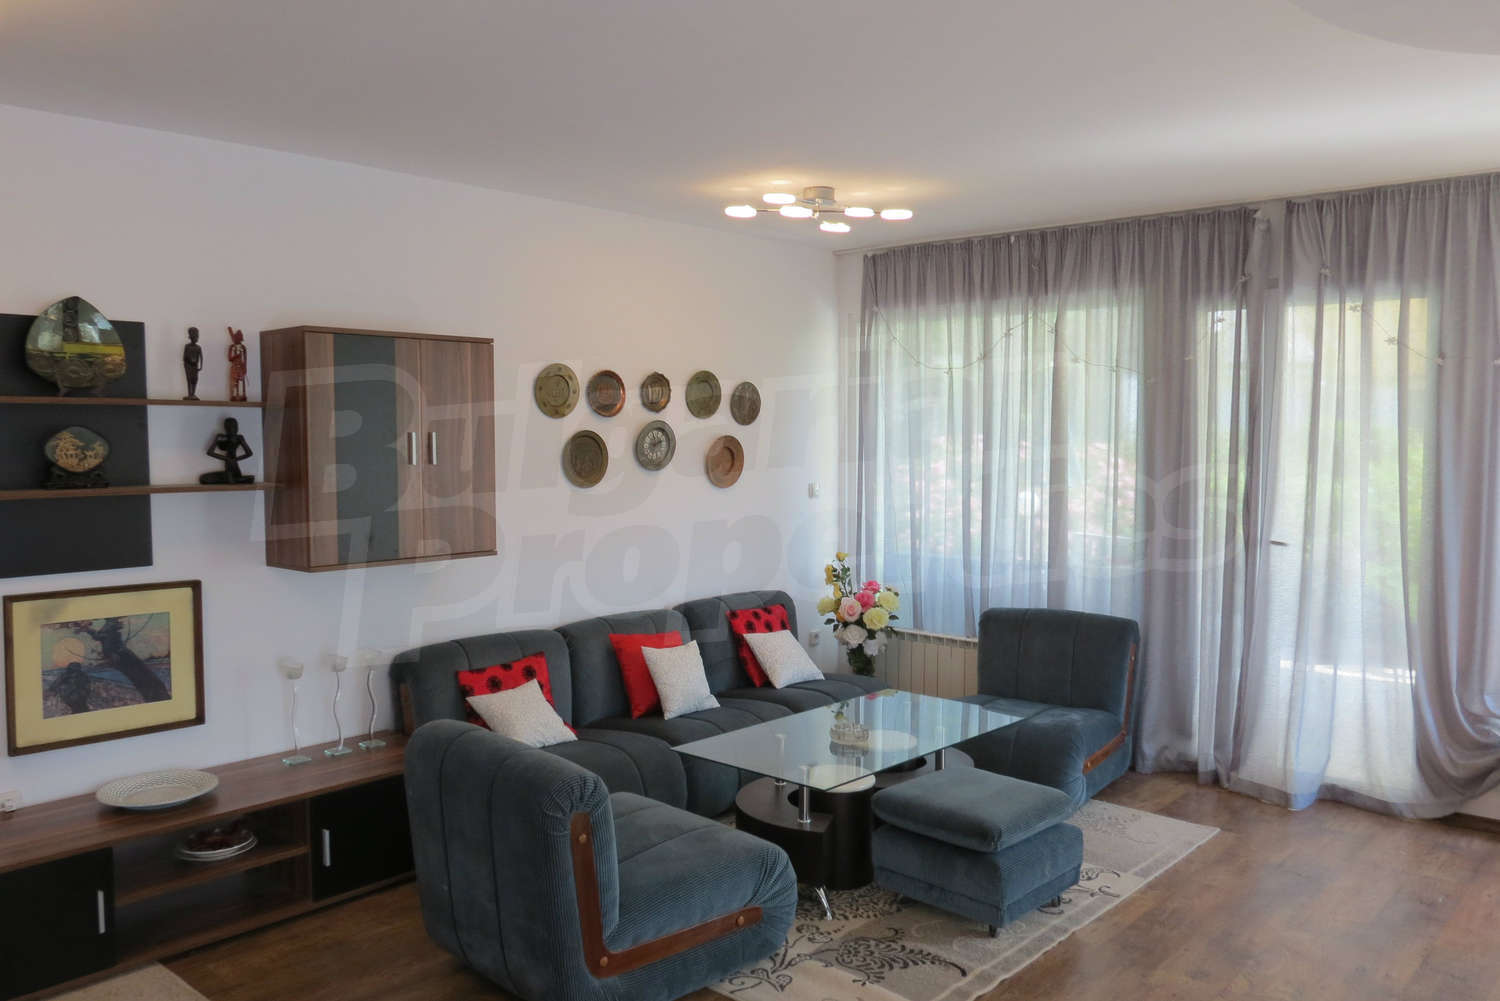 House For Rent Near Sofia Bulgaria Modern Fully Furnished 2